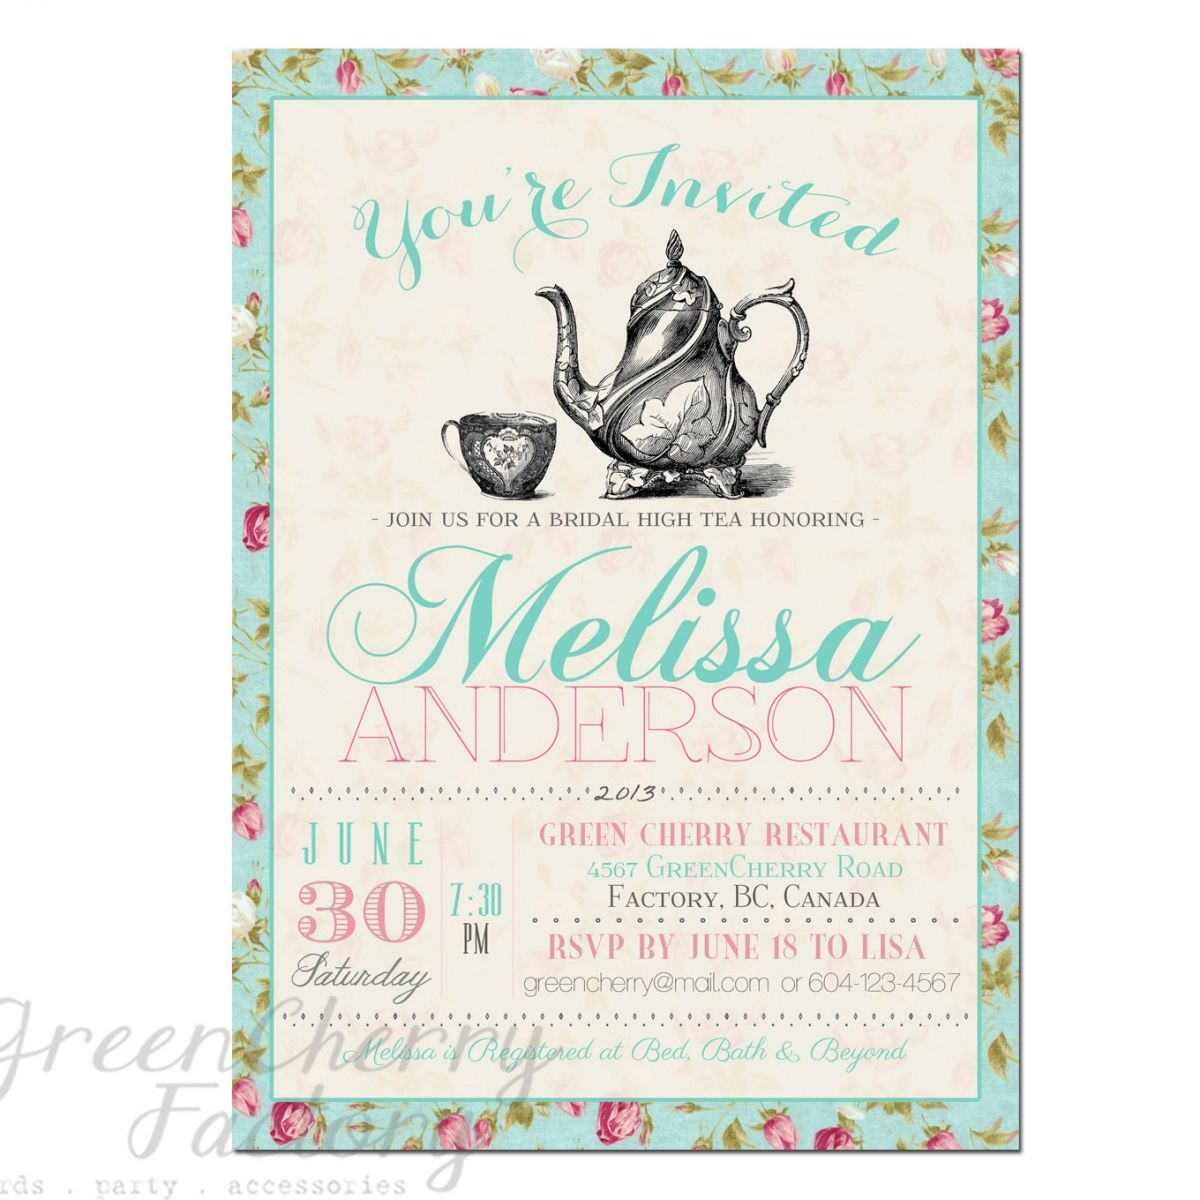 Tea Party Invitation Templates to Print | Free Printable Tea Party